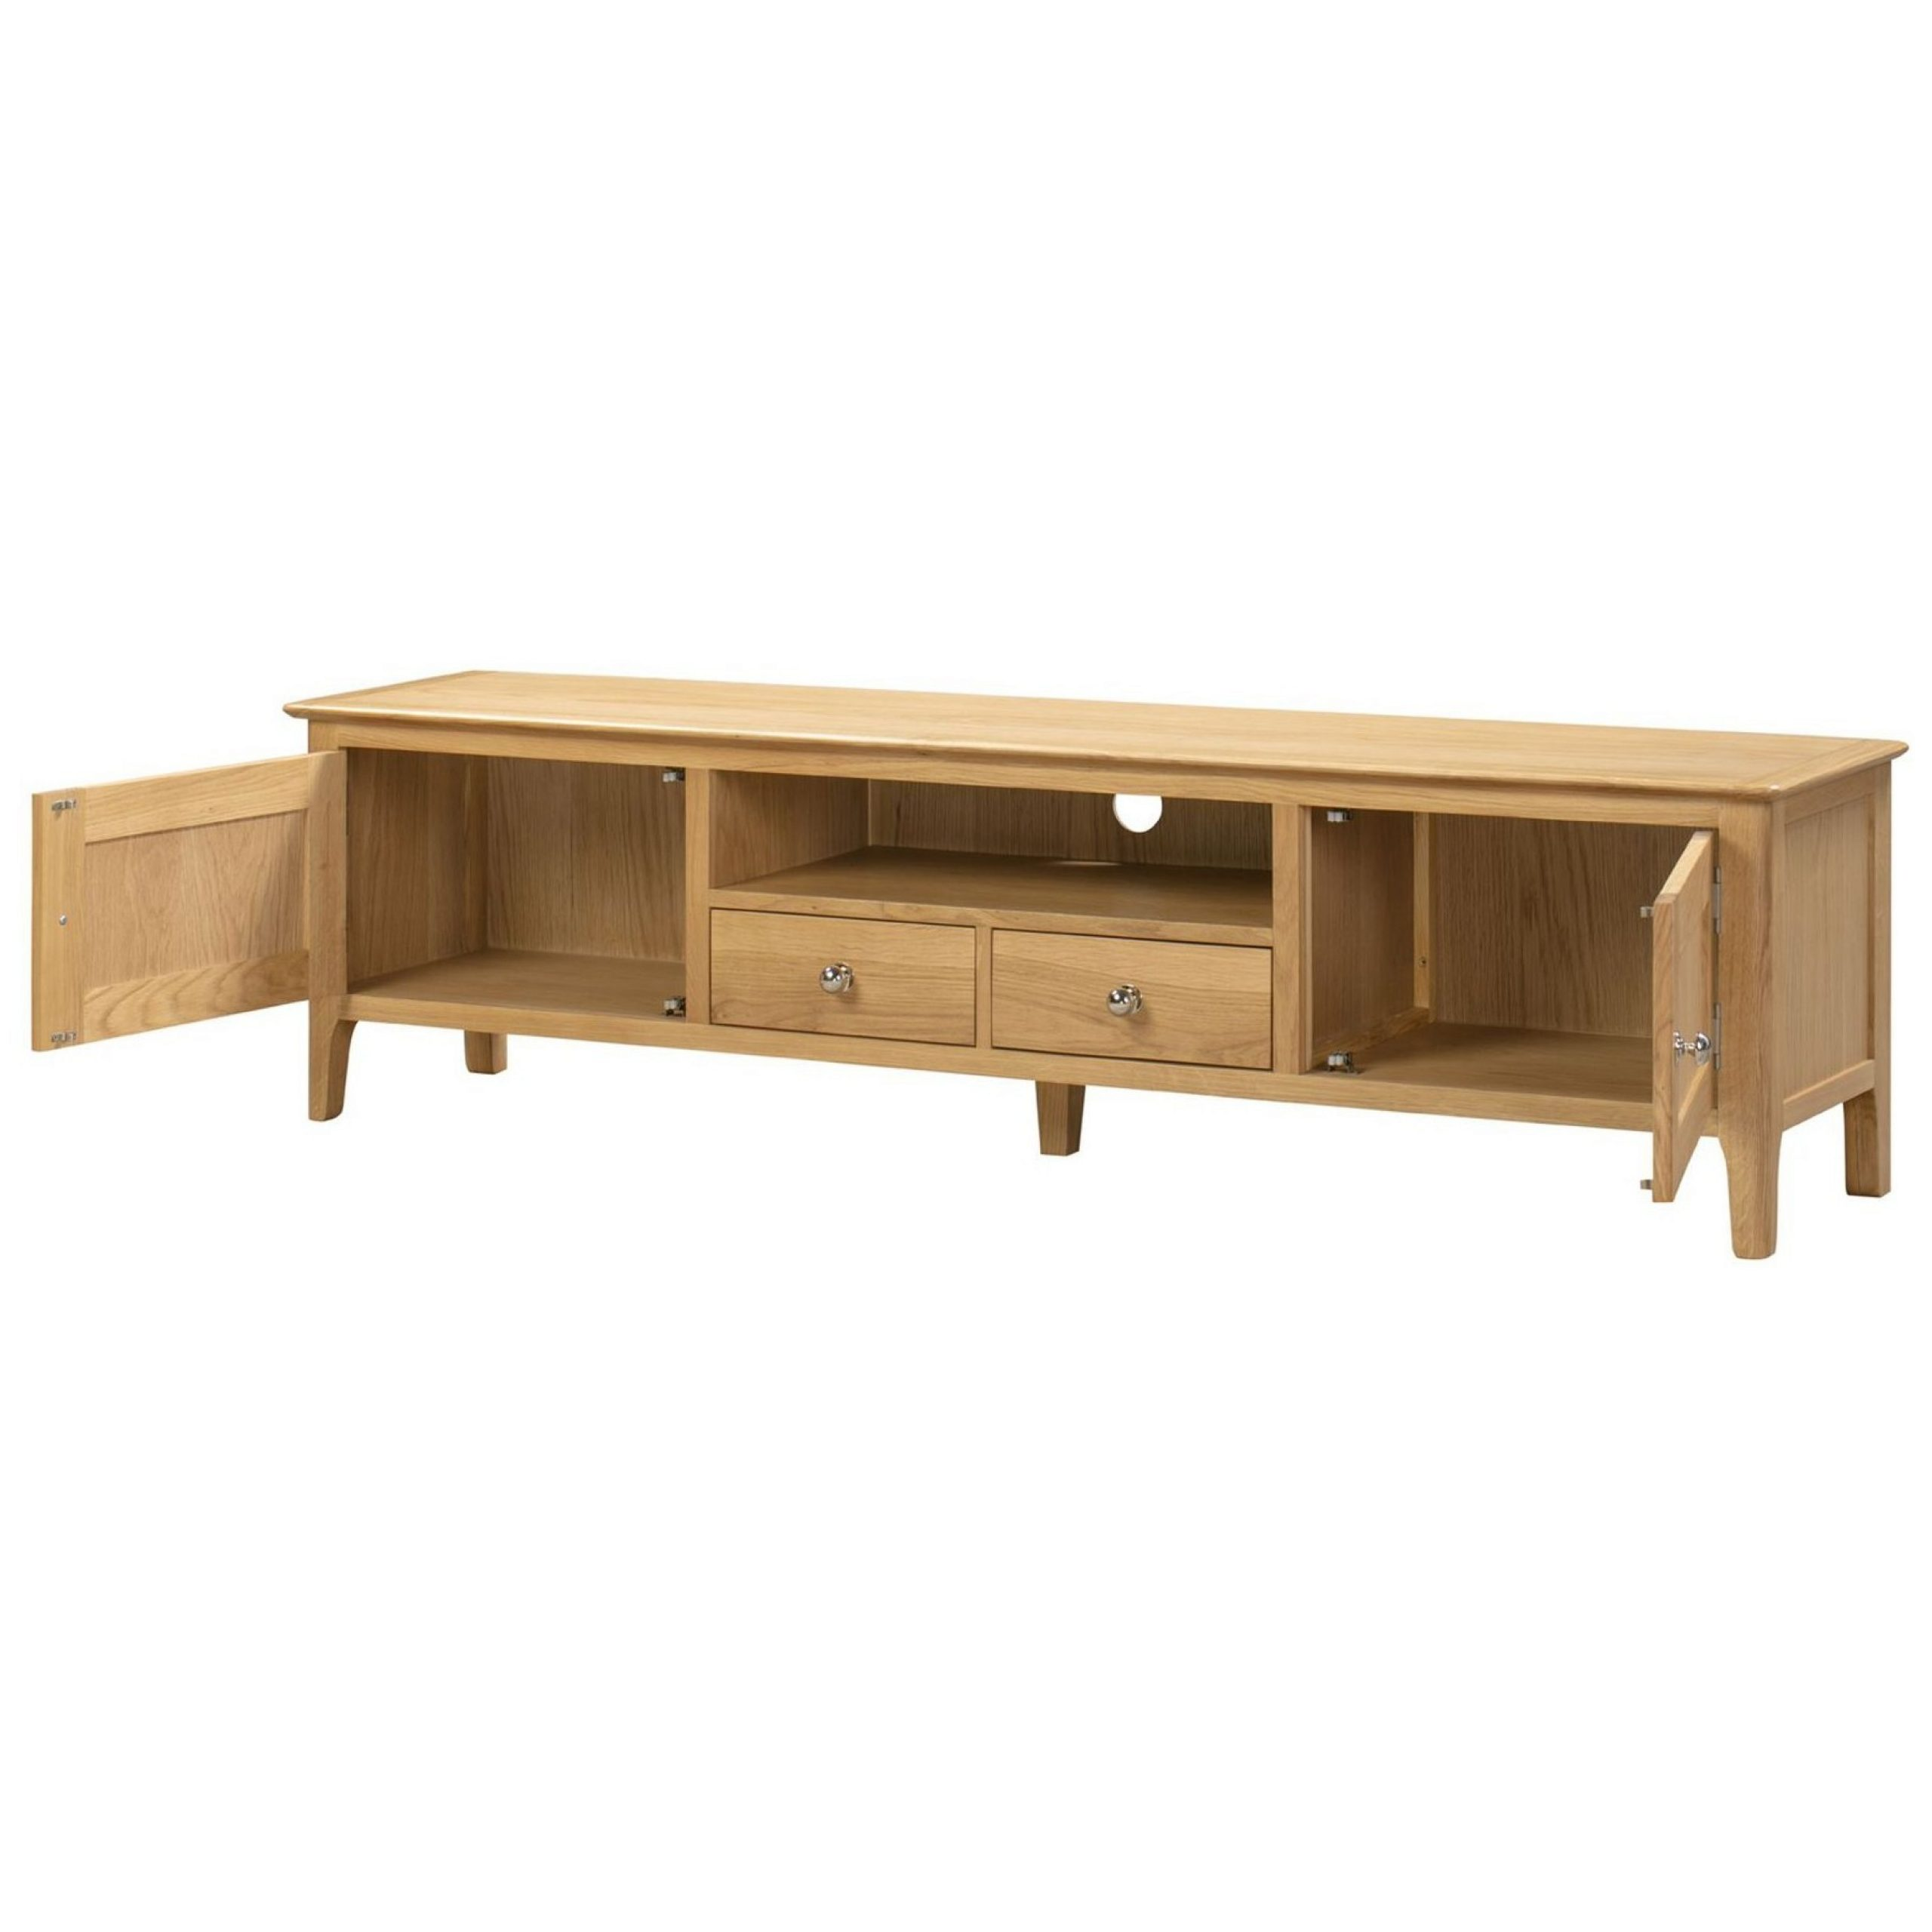 Buy Cotswold Tv Unitjulian Bowen From The Next Uk Intended For Cotswold Widescreen Tv Unit Stands (View 14 of 20)